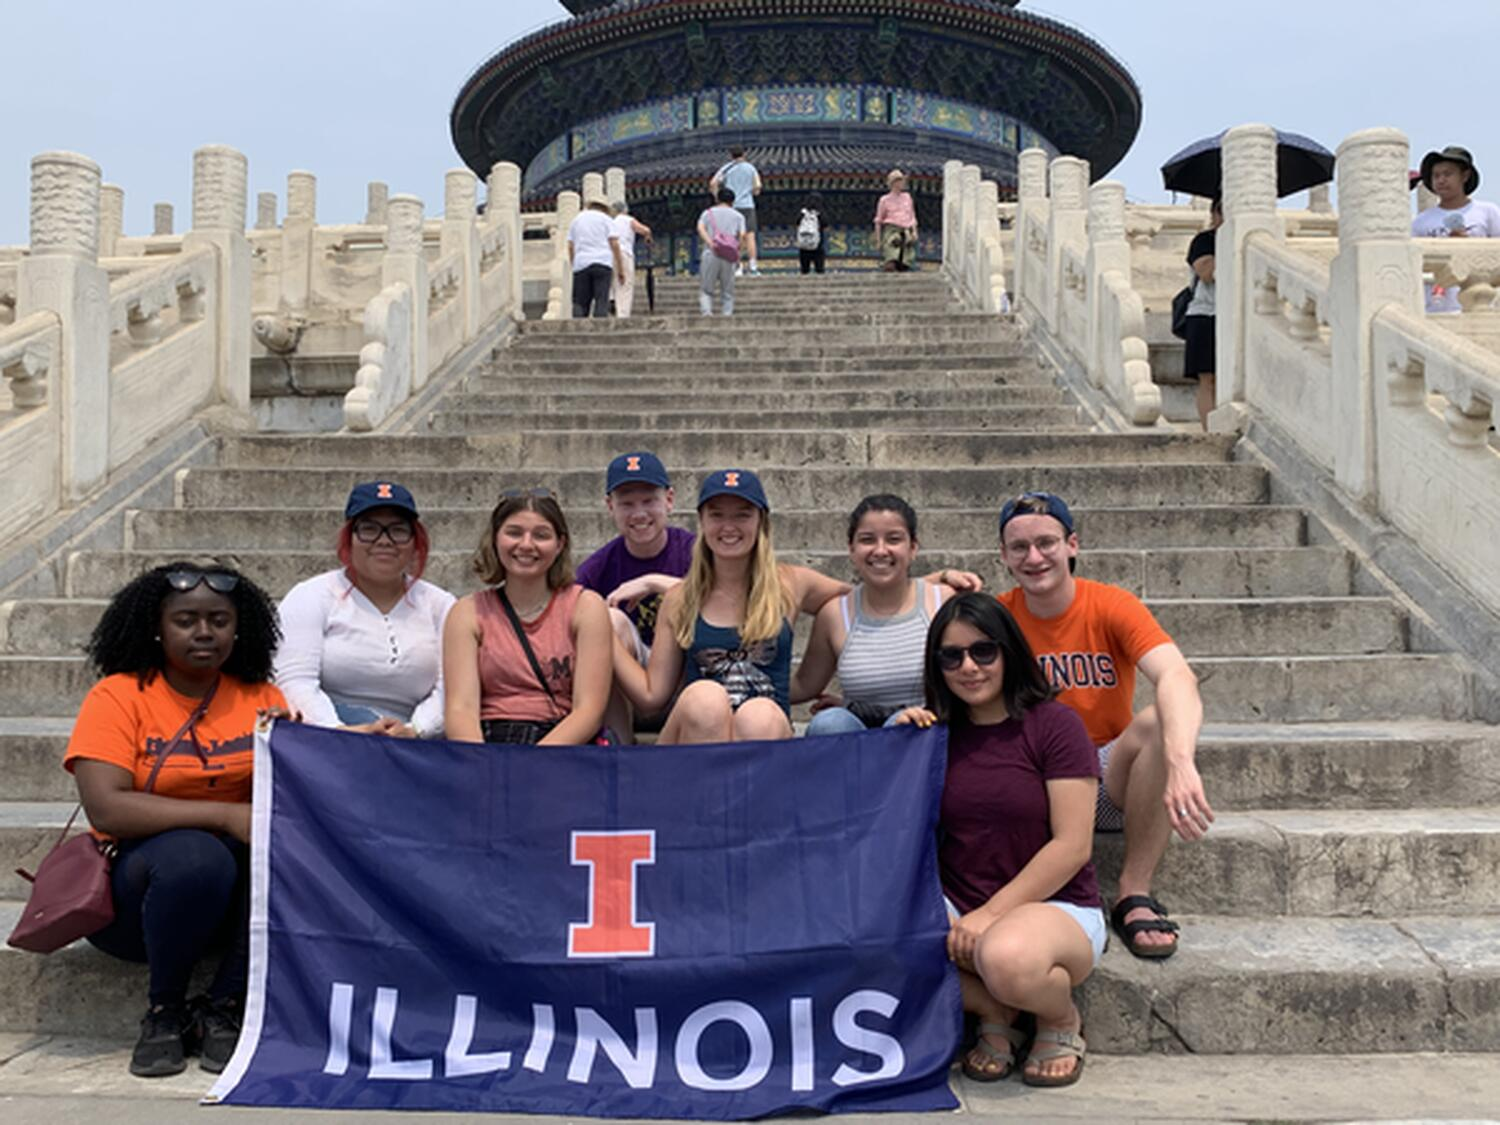 Wanxiang recipients holding an University of Illinois Flag on the steps of China's Temple of Heaven